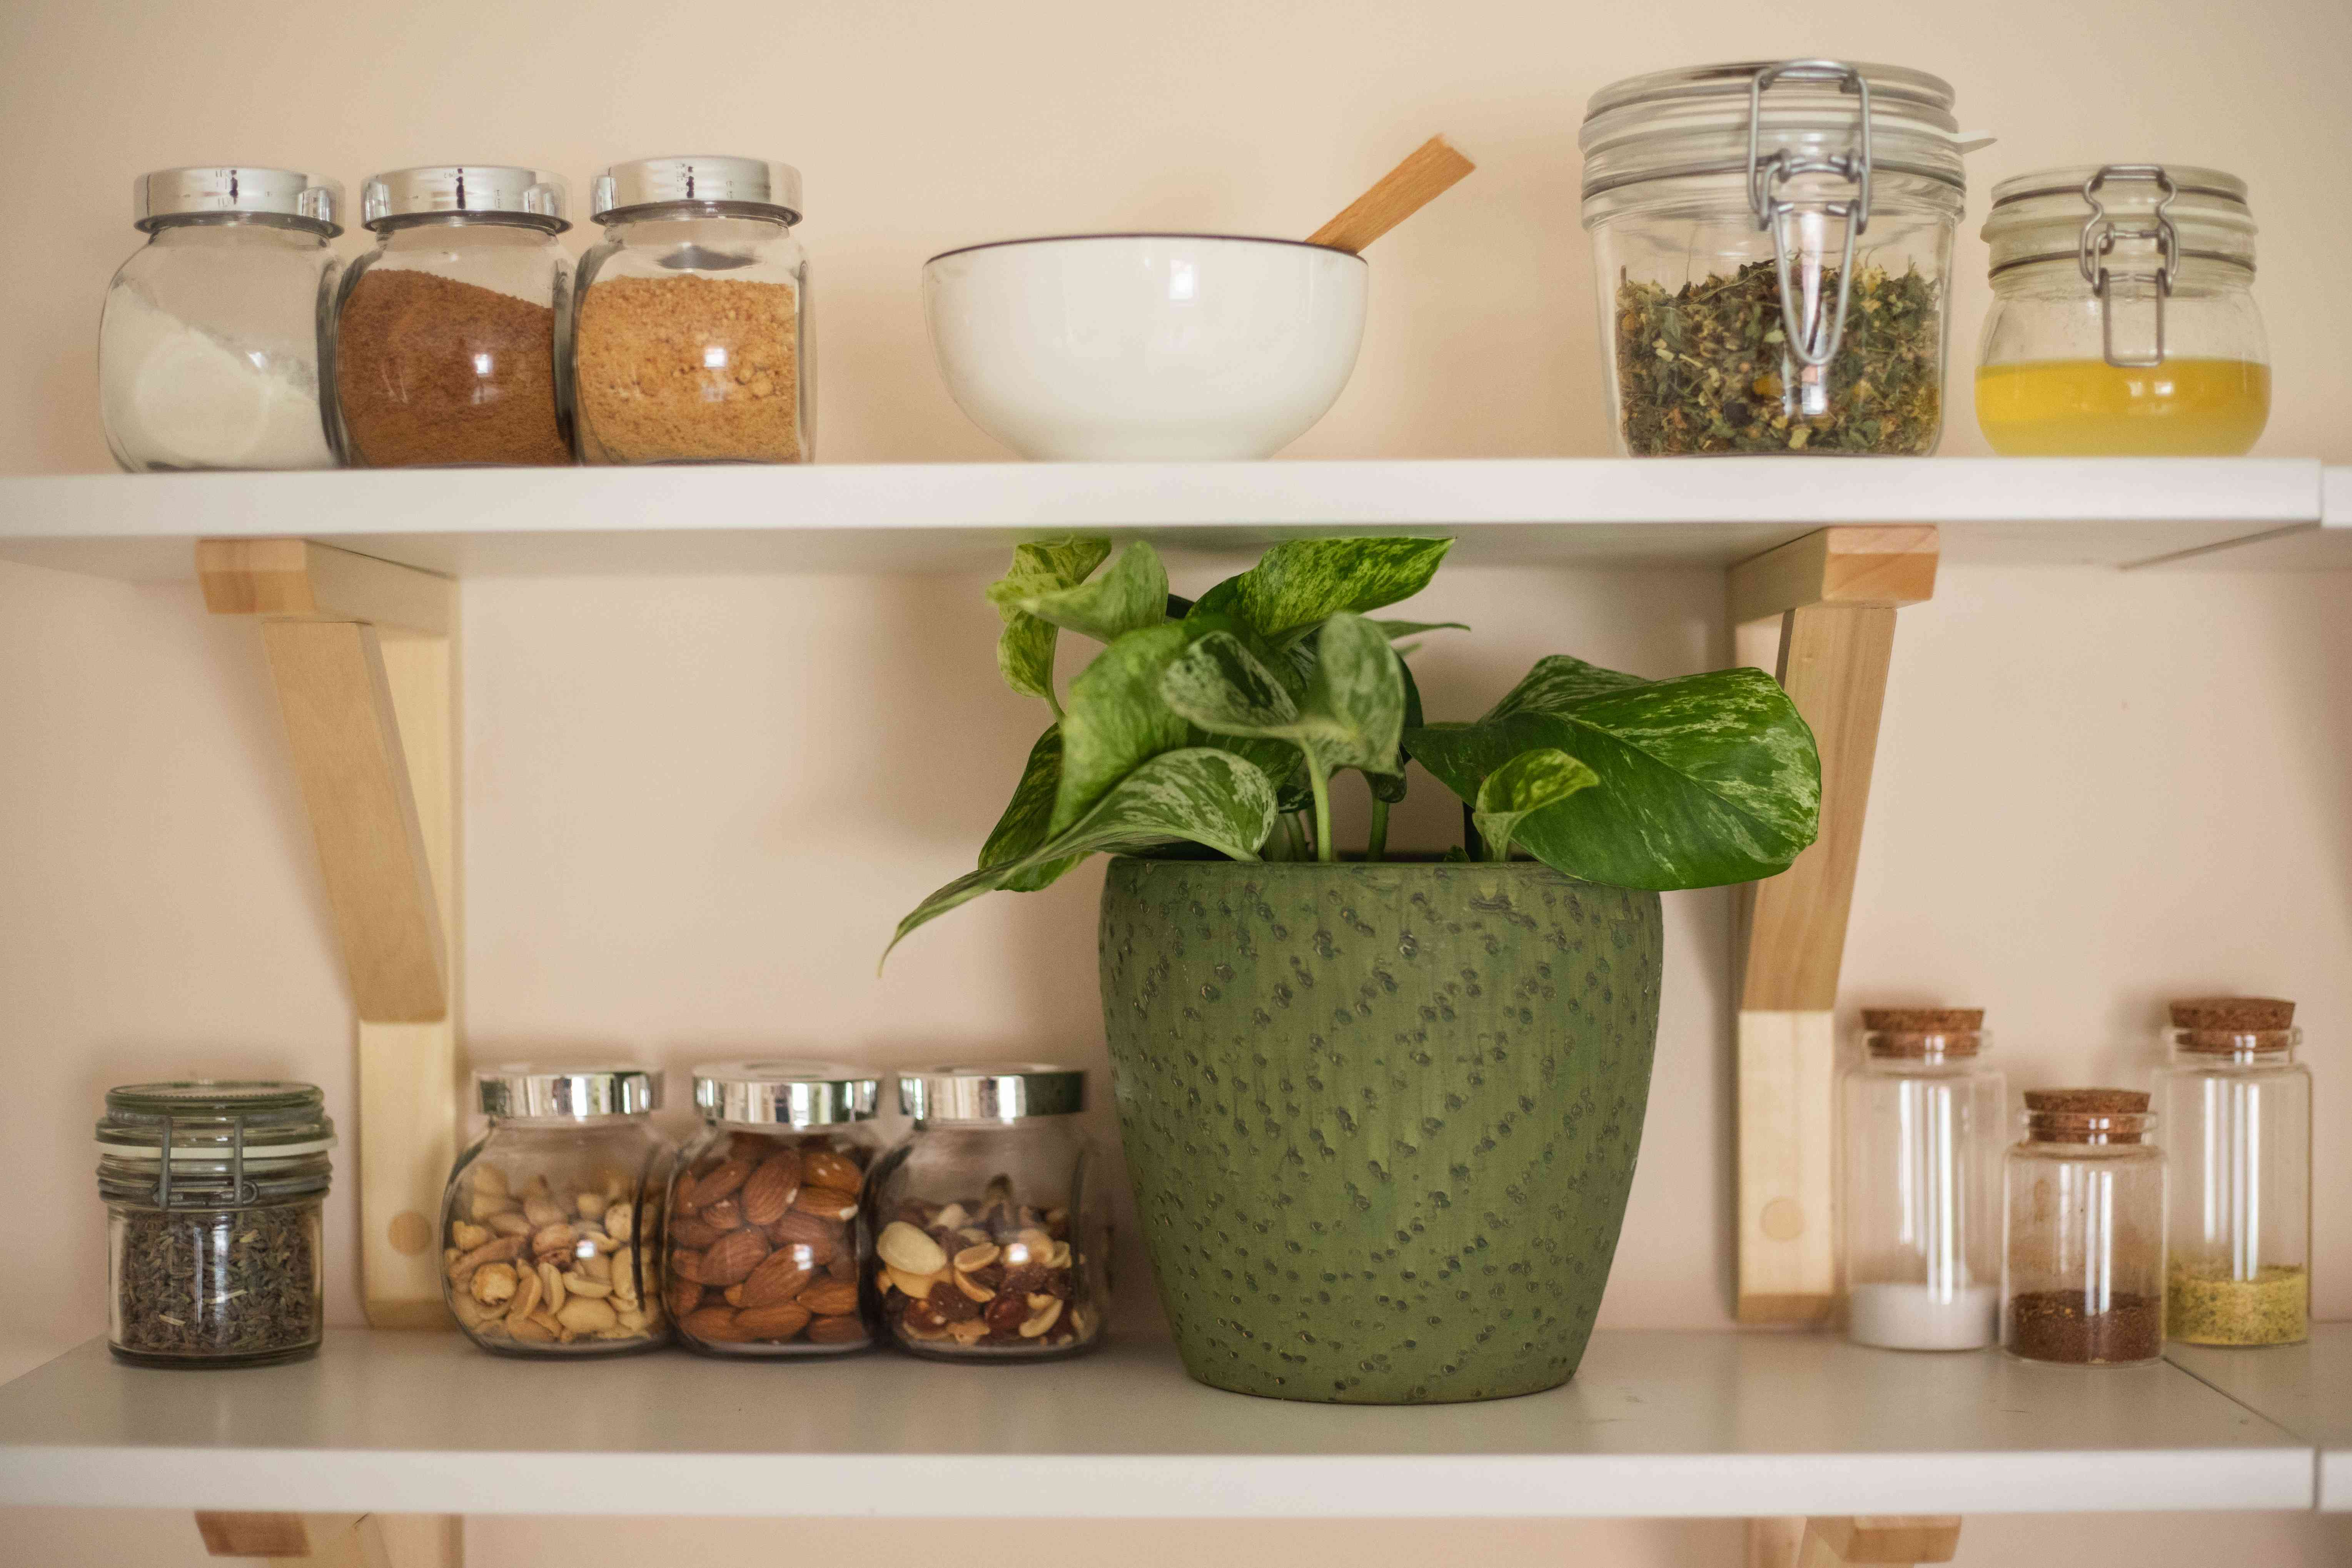 floating shelves filled with dry goods in glass jars and a green potted houseplant